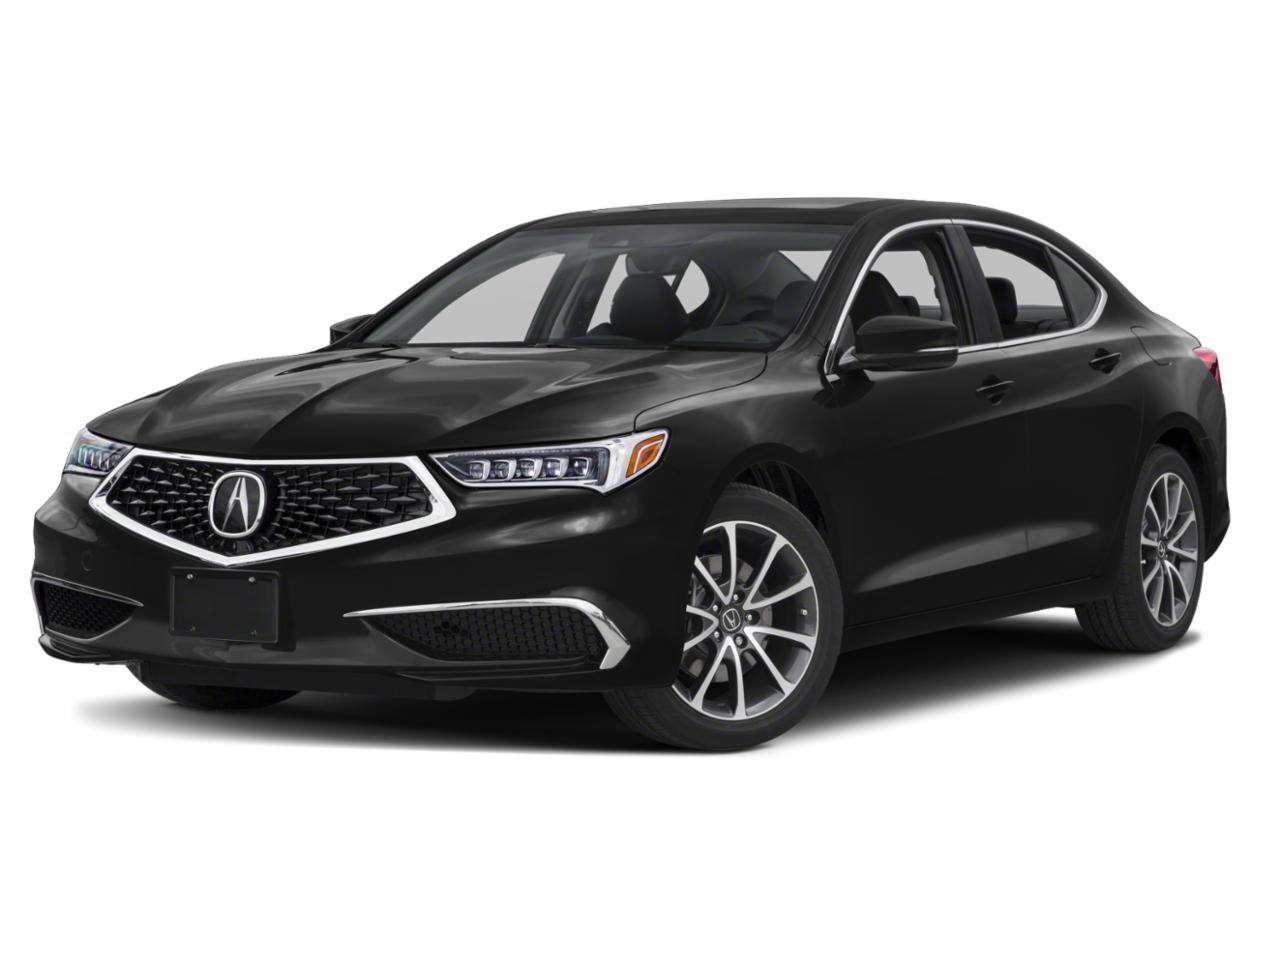 2019 Acura TLX Vehicle Photo in Appleton, WI 54913